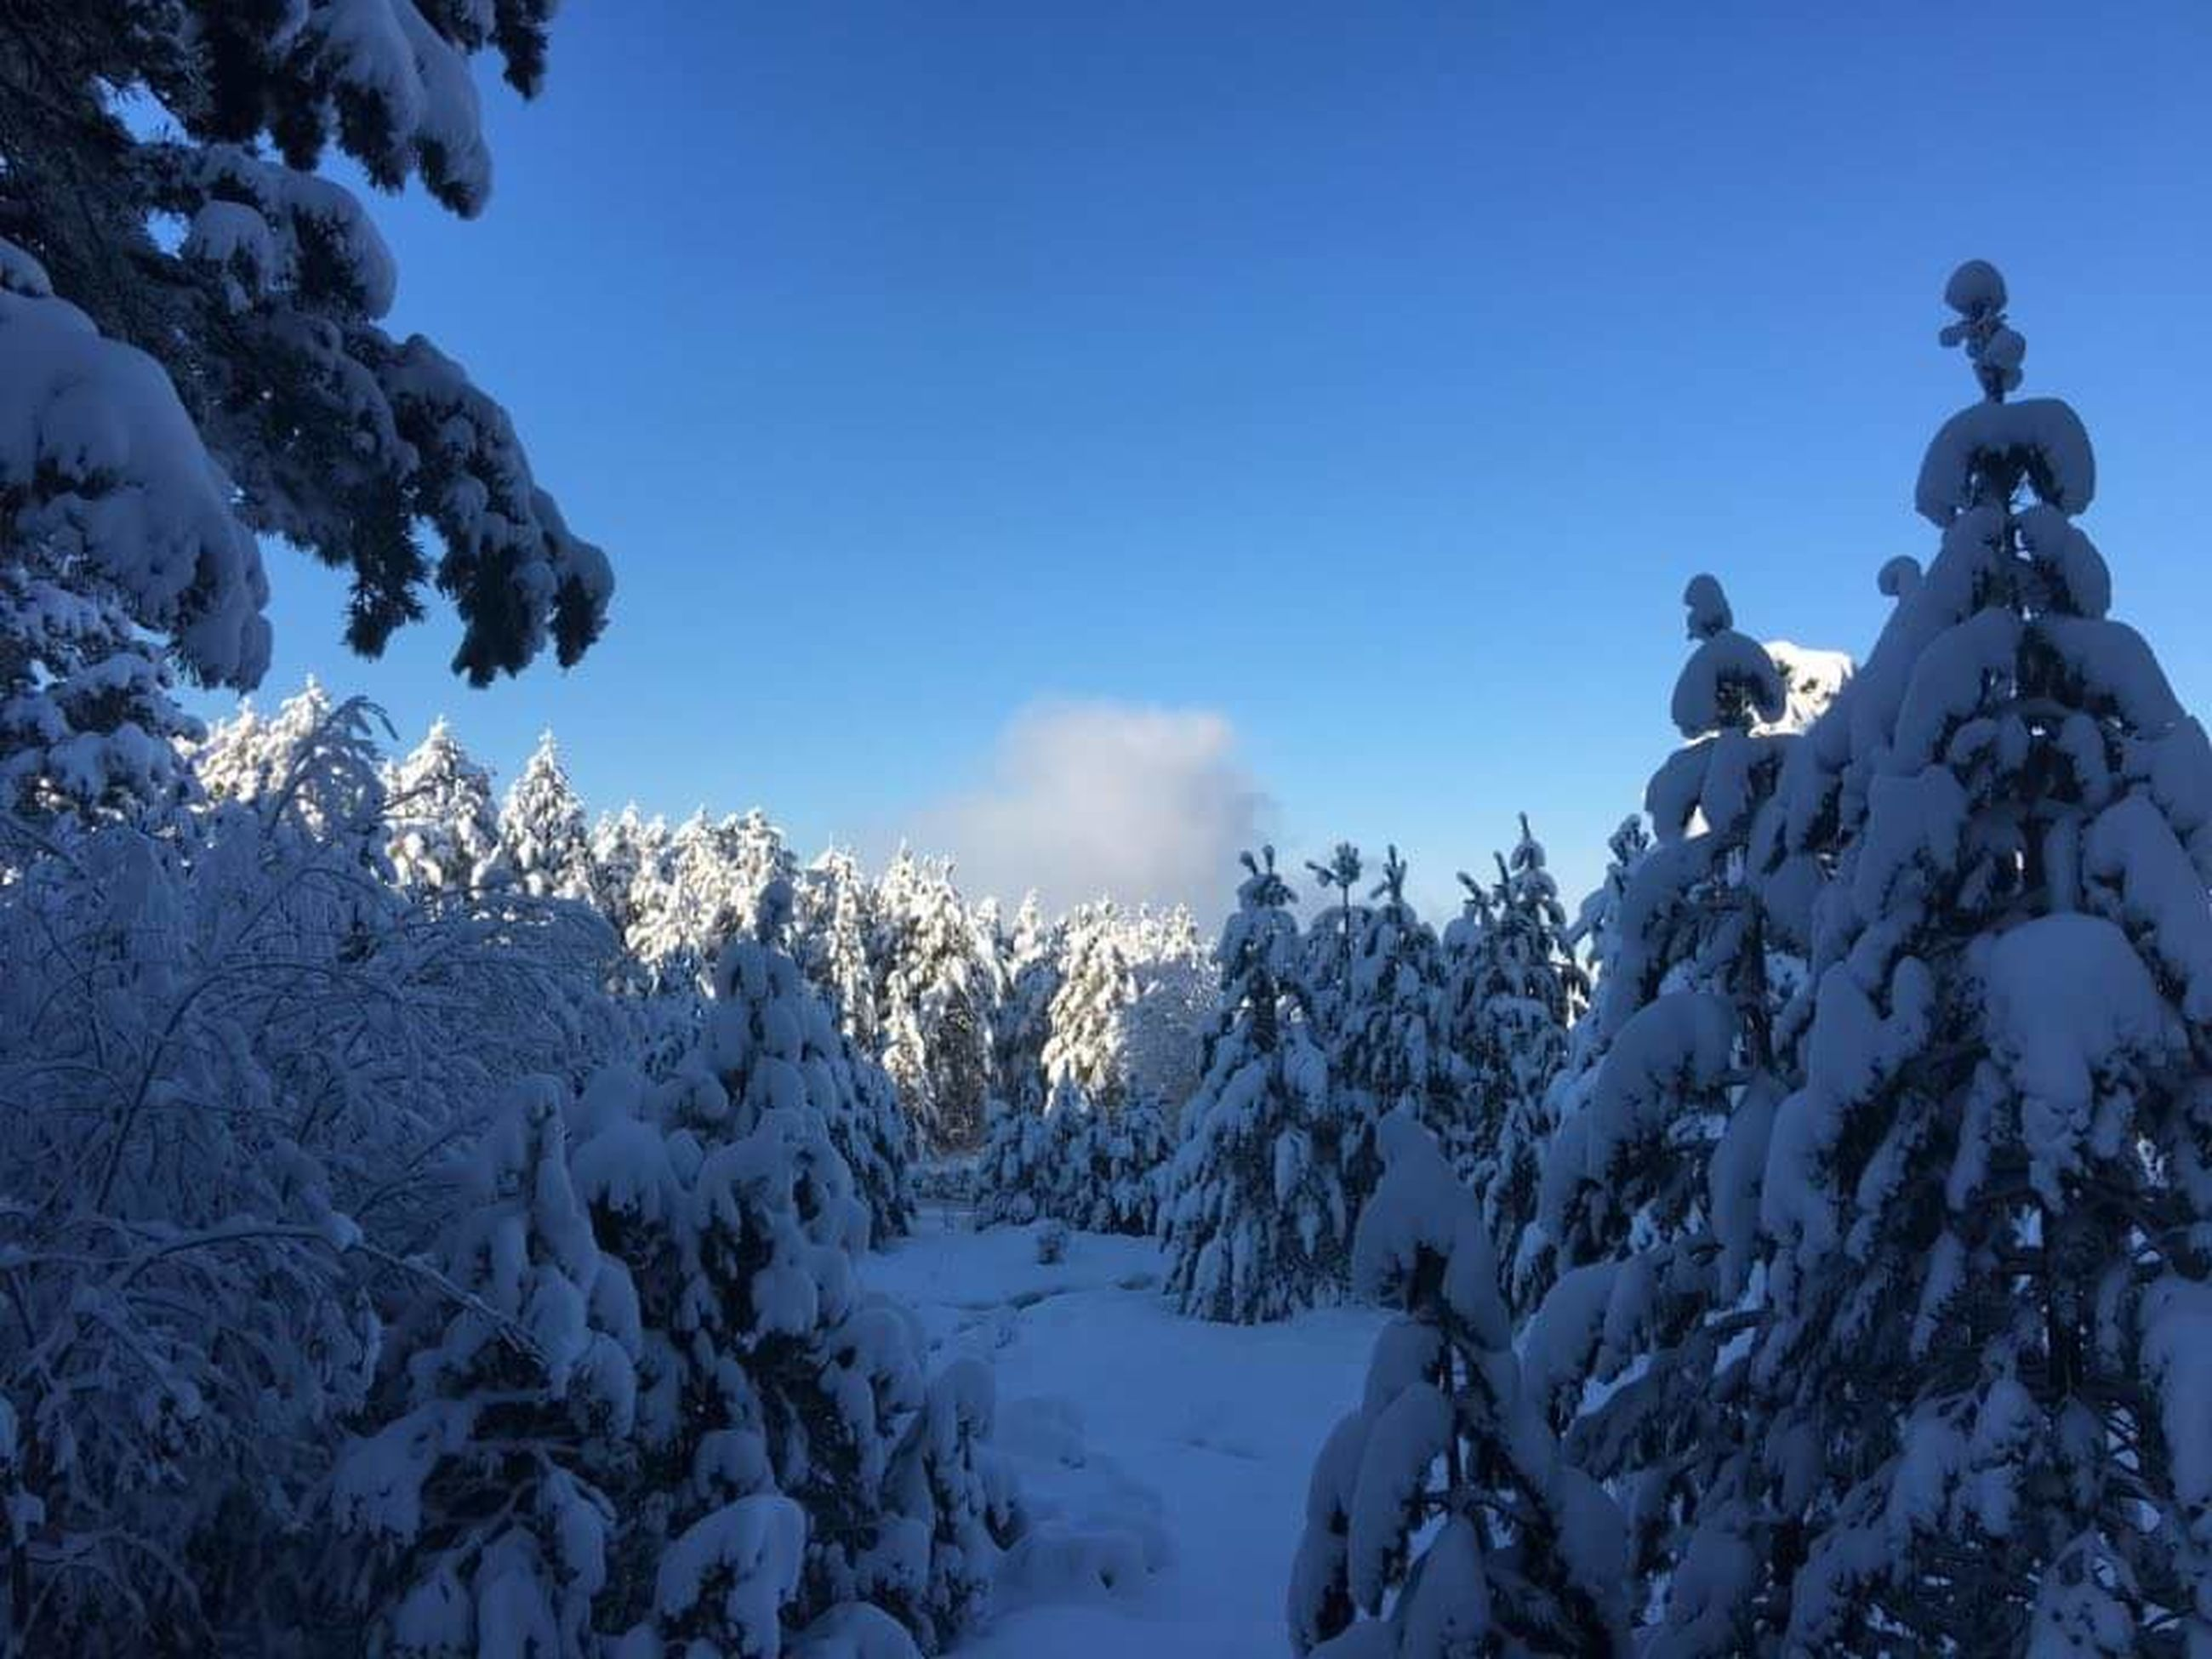 snow, winter, cold temperature, season, weather, tranquility, tranquil scene, beauty in nature, mountain, scenics, covering, snowcapped mountain, nature, blue, frozen, clear sky, landscape, white color, tree, sky